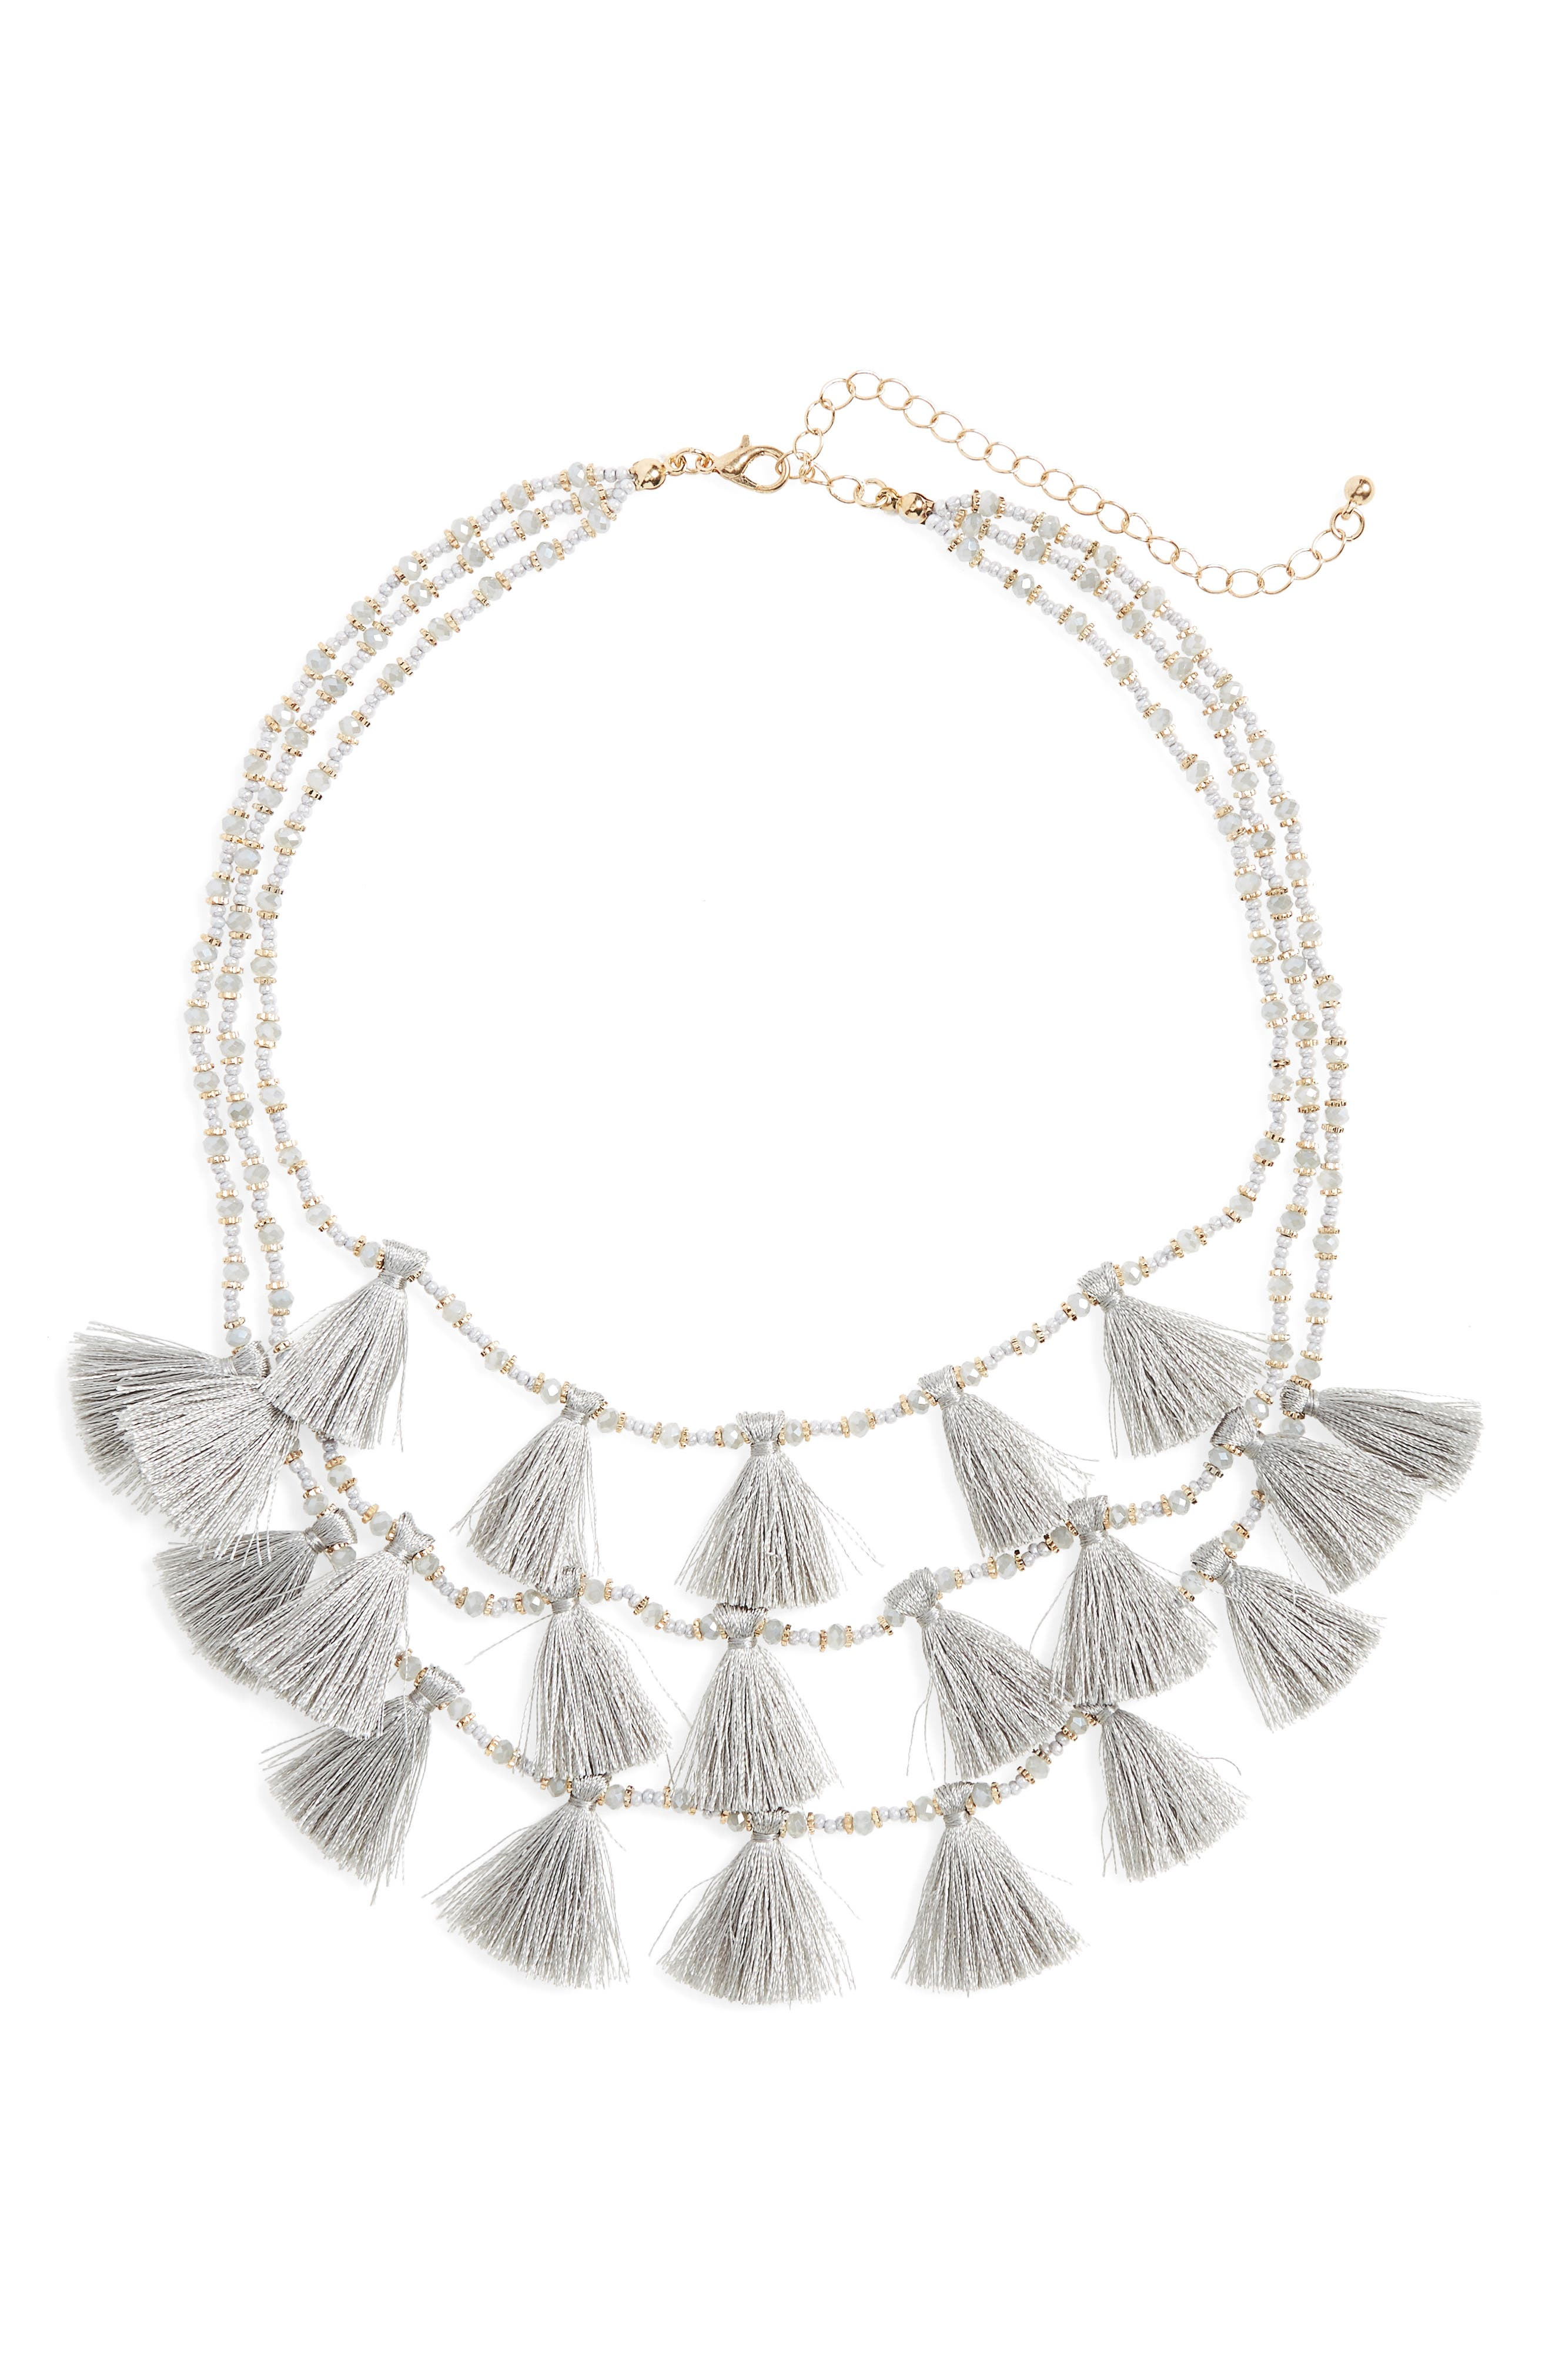 Tassel Statement Necklace,                             Main thumbnail 1, color,                             020